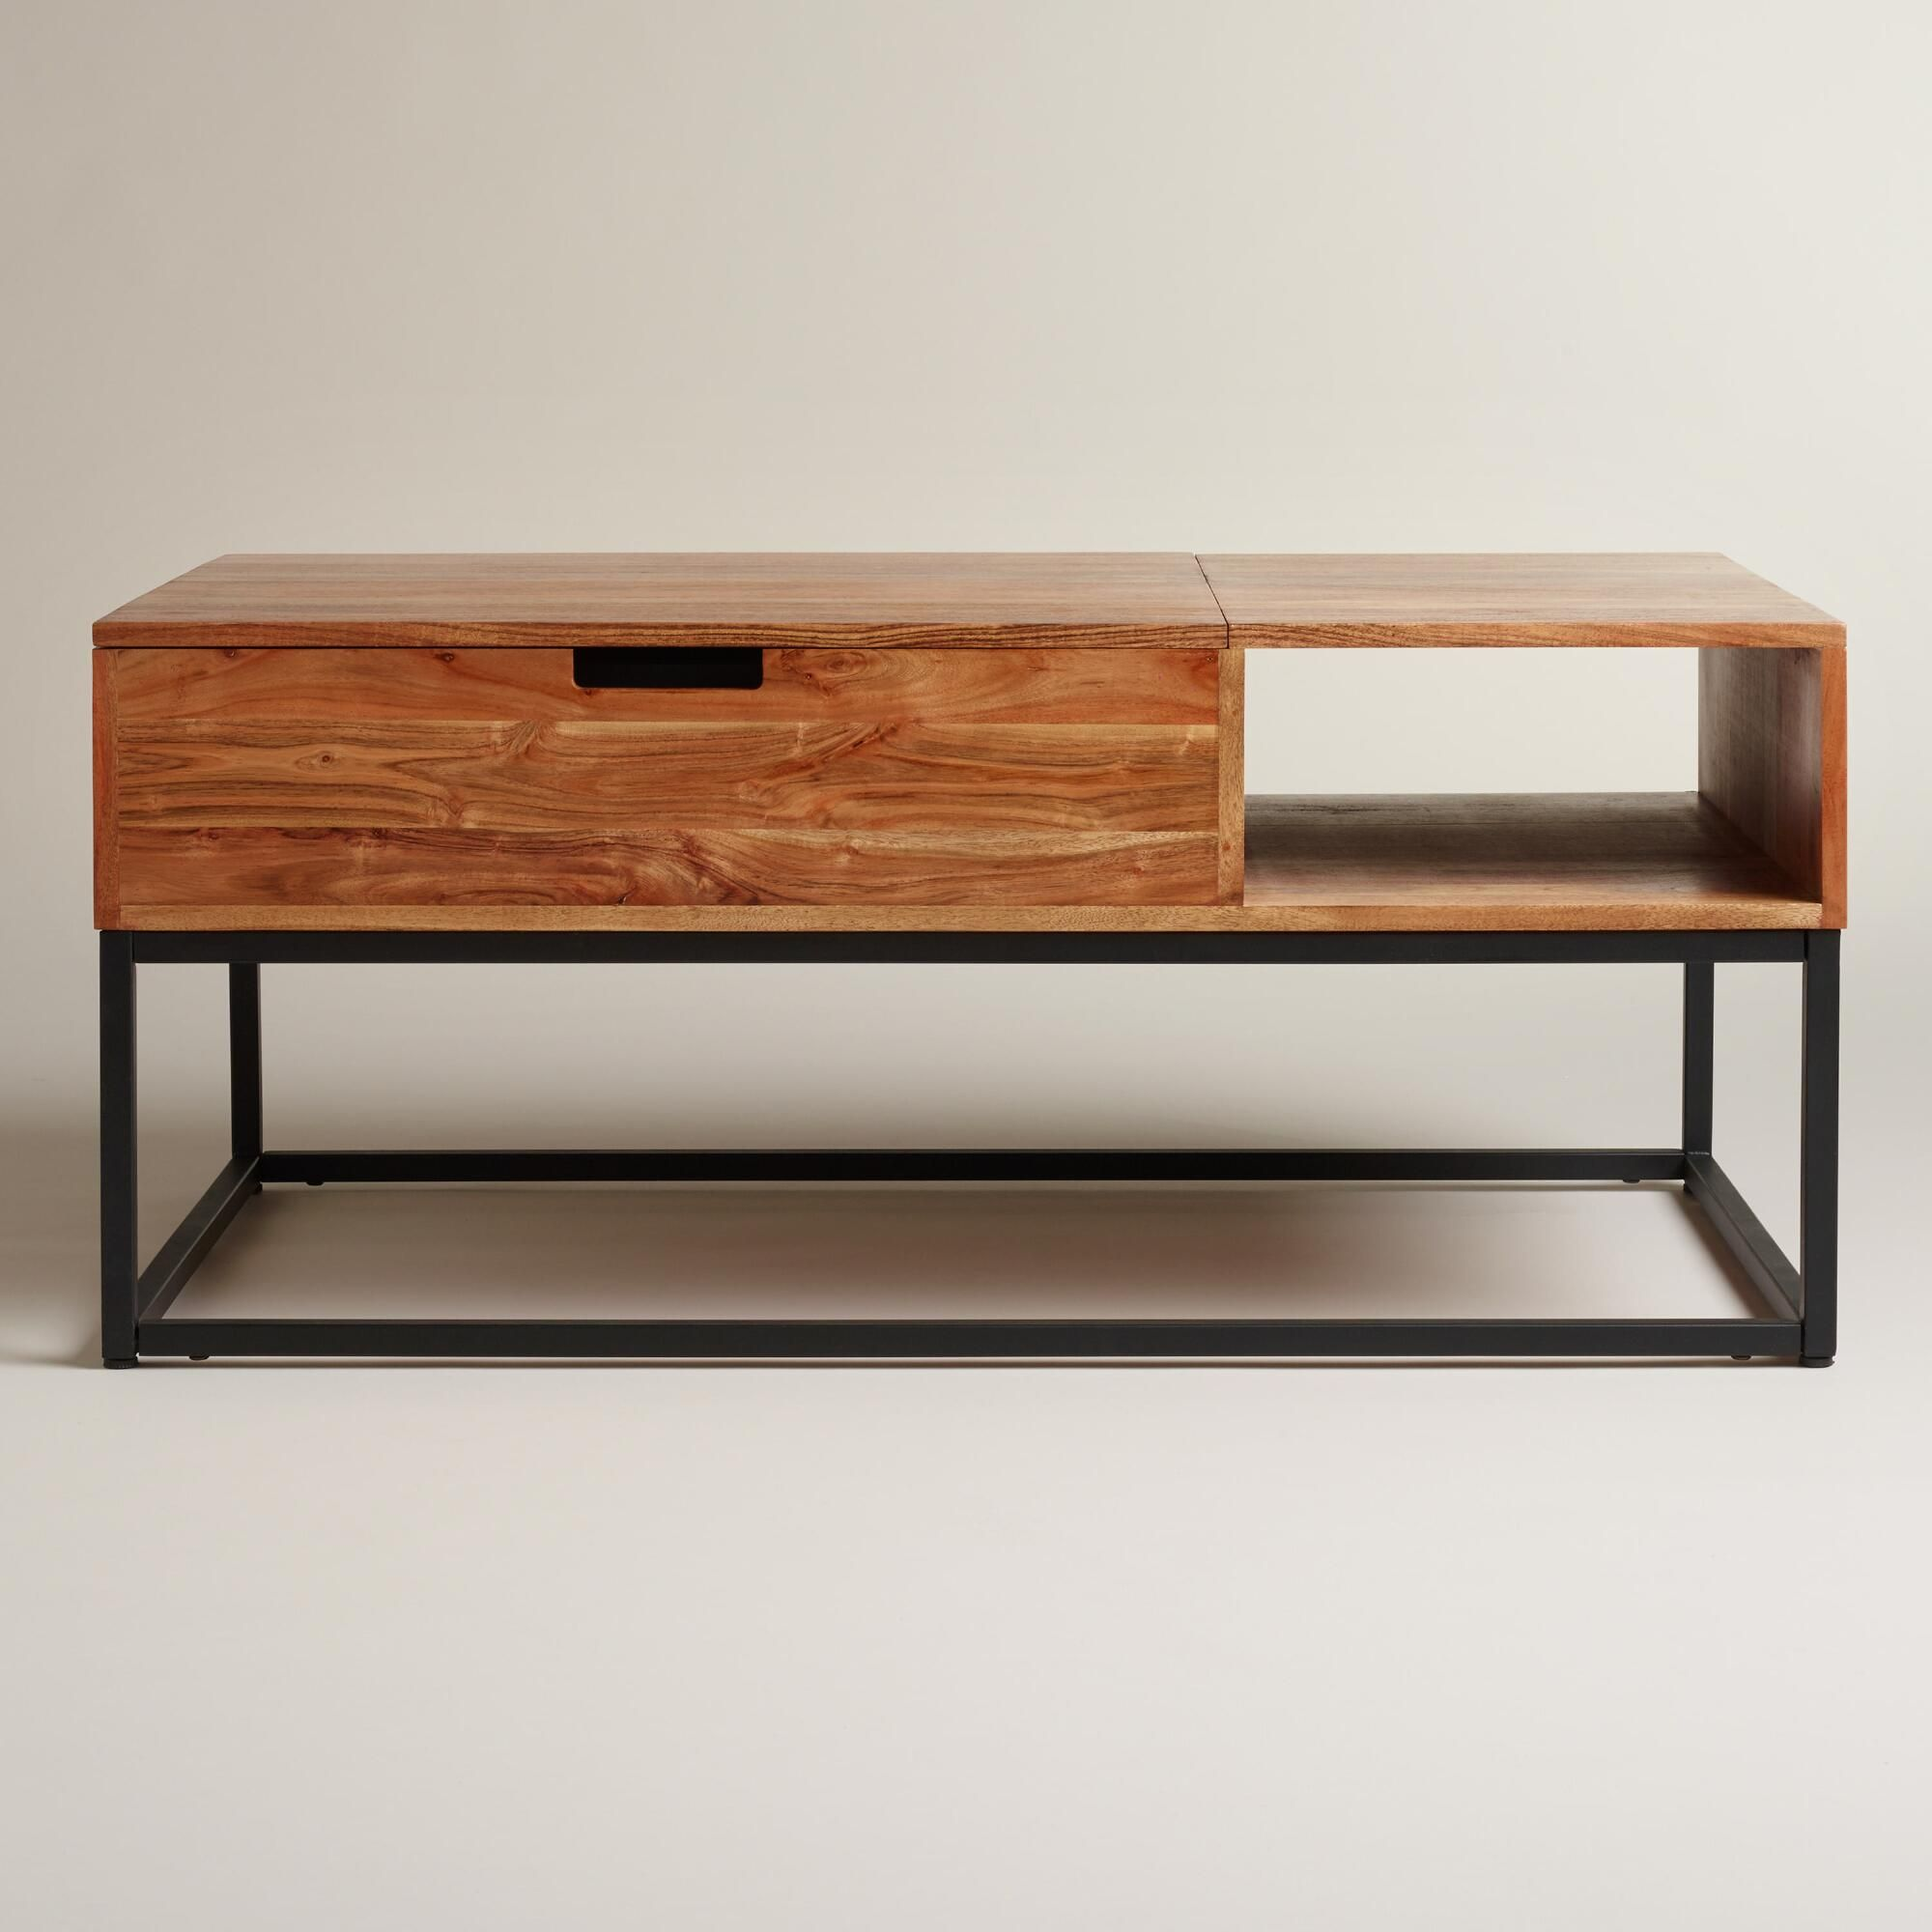 Wood Silas Storage Coffee Table Coffee Table With Storage Living Room Coffee Table Metal Coffee Table [ 2000 x 2000 Pixel ]